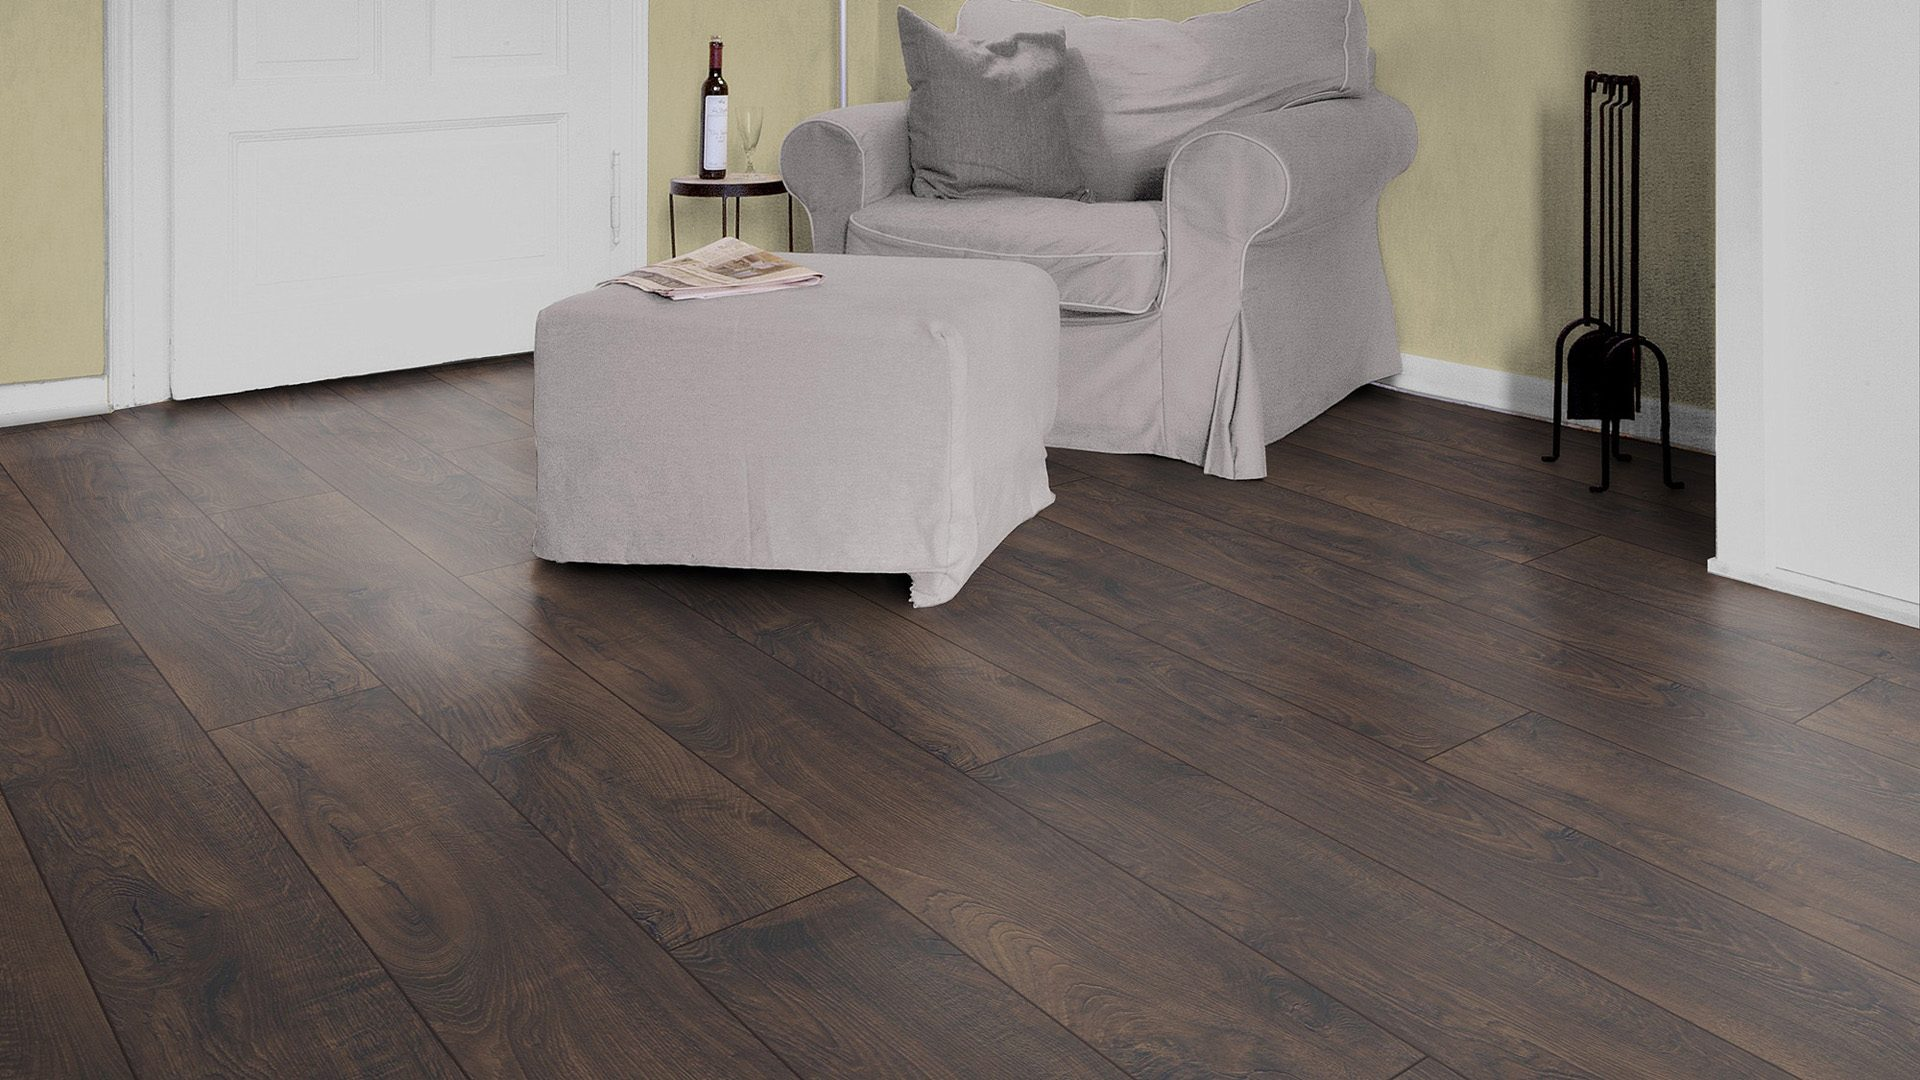 Embelton aqua tuf vinyl flooring geelong floors for Timber flooring